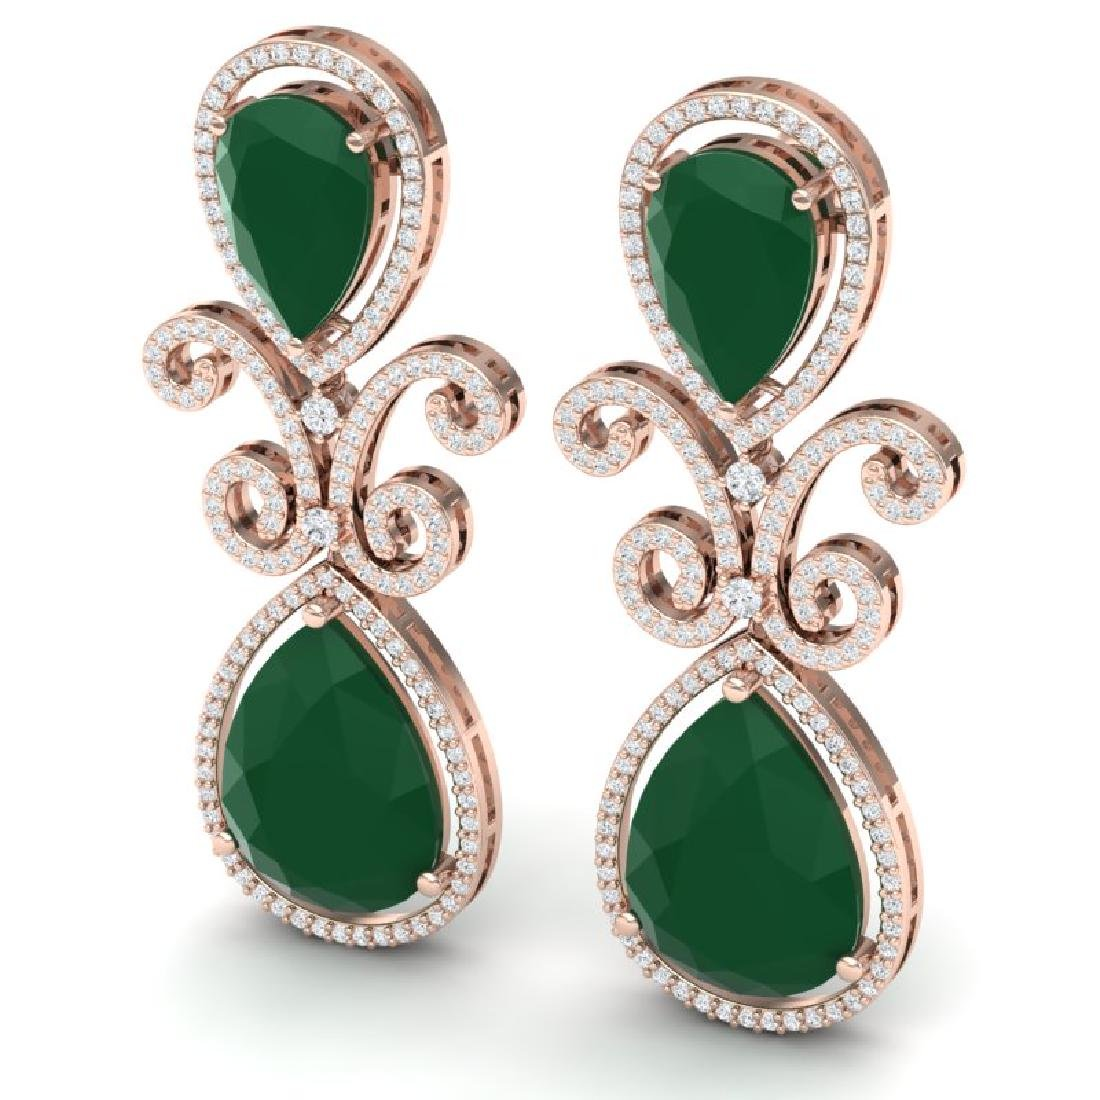 31.6 CTW Royalty Emerald & VS Diamond Earrings 18K Rose - 2